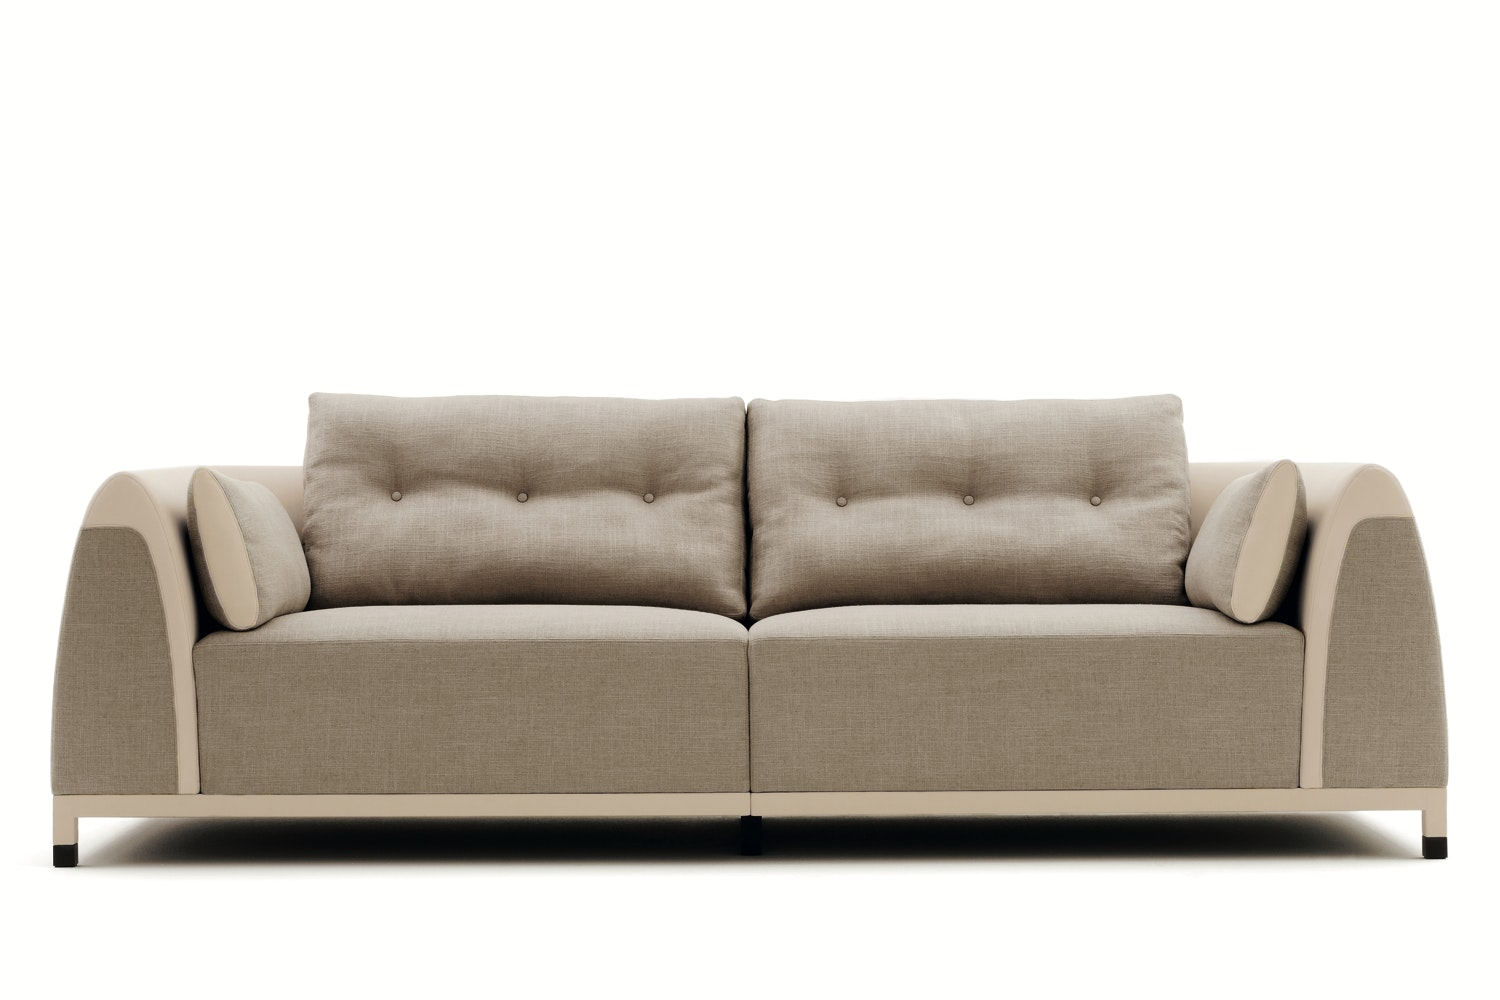 Soi Sofa by Chi Wing Lo for Giorgetti